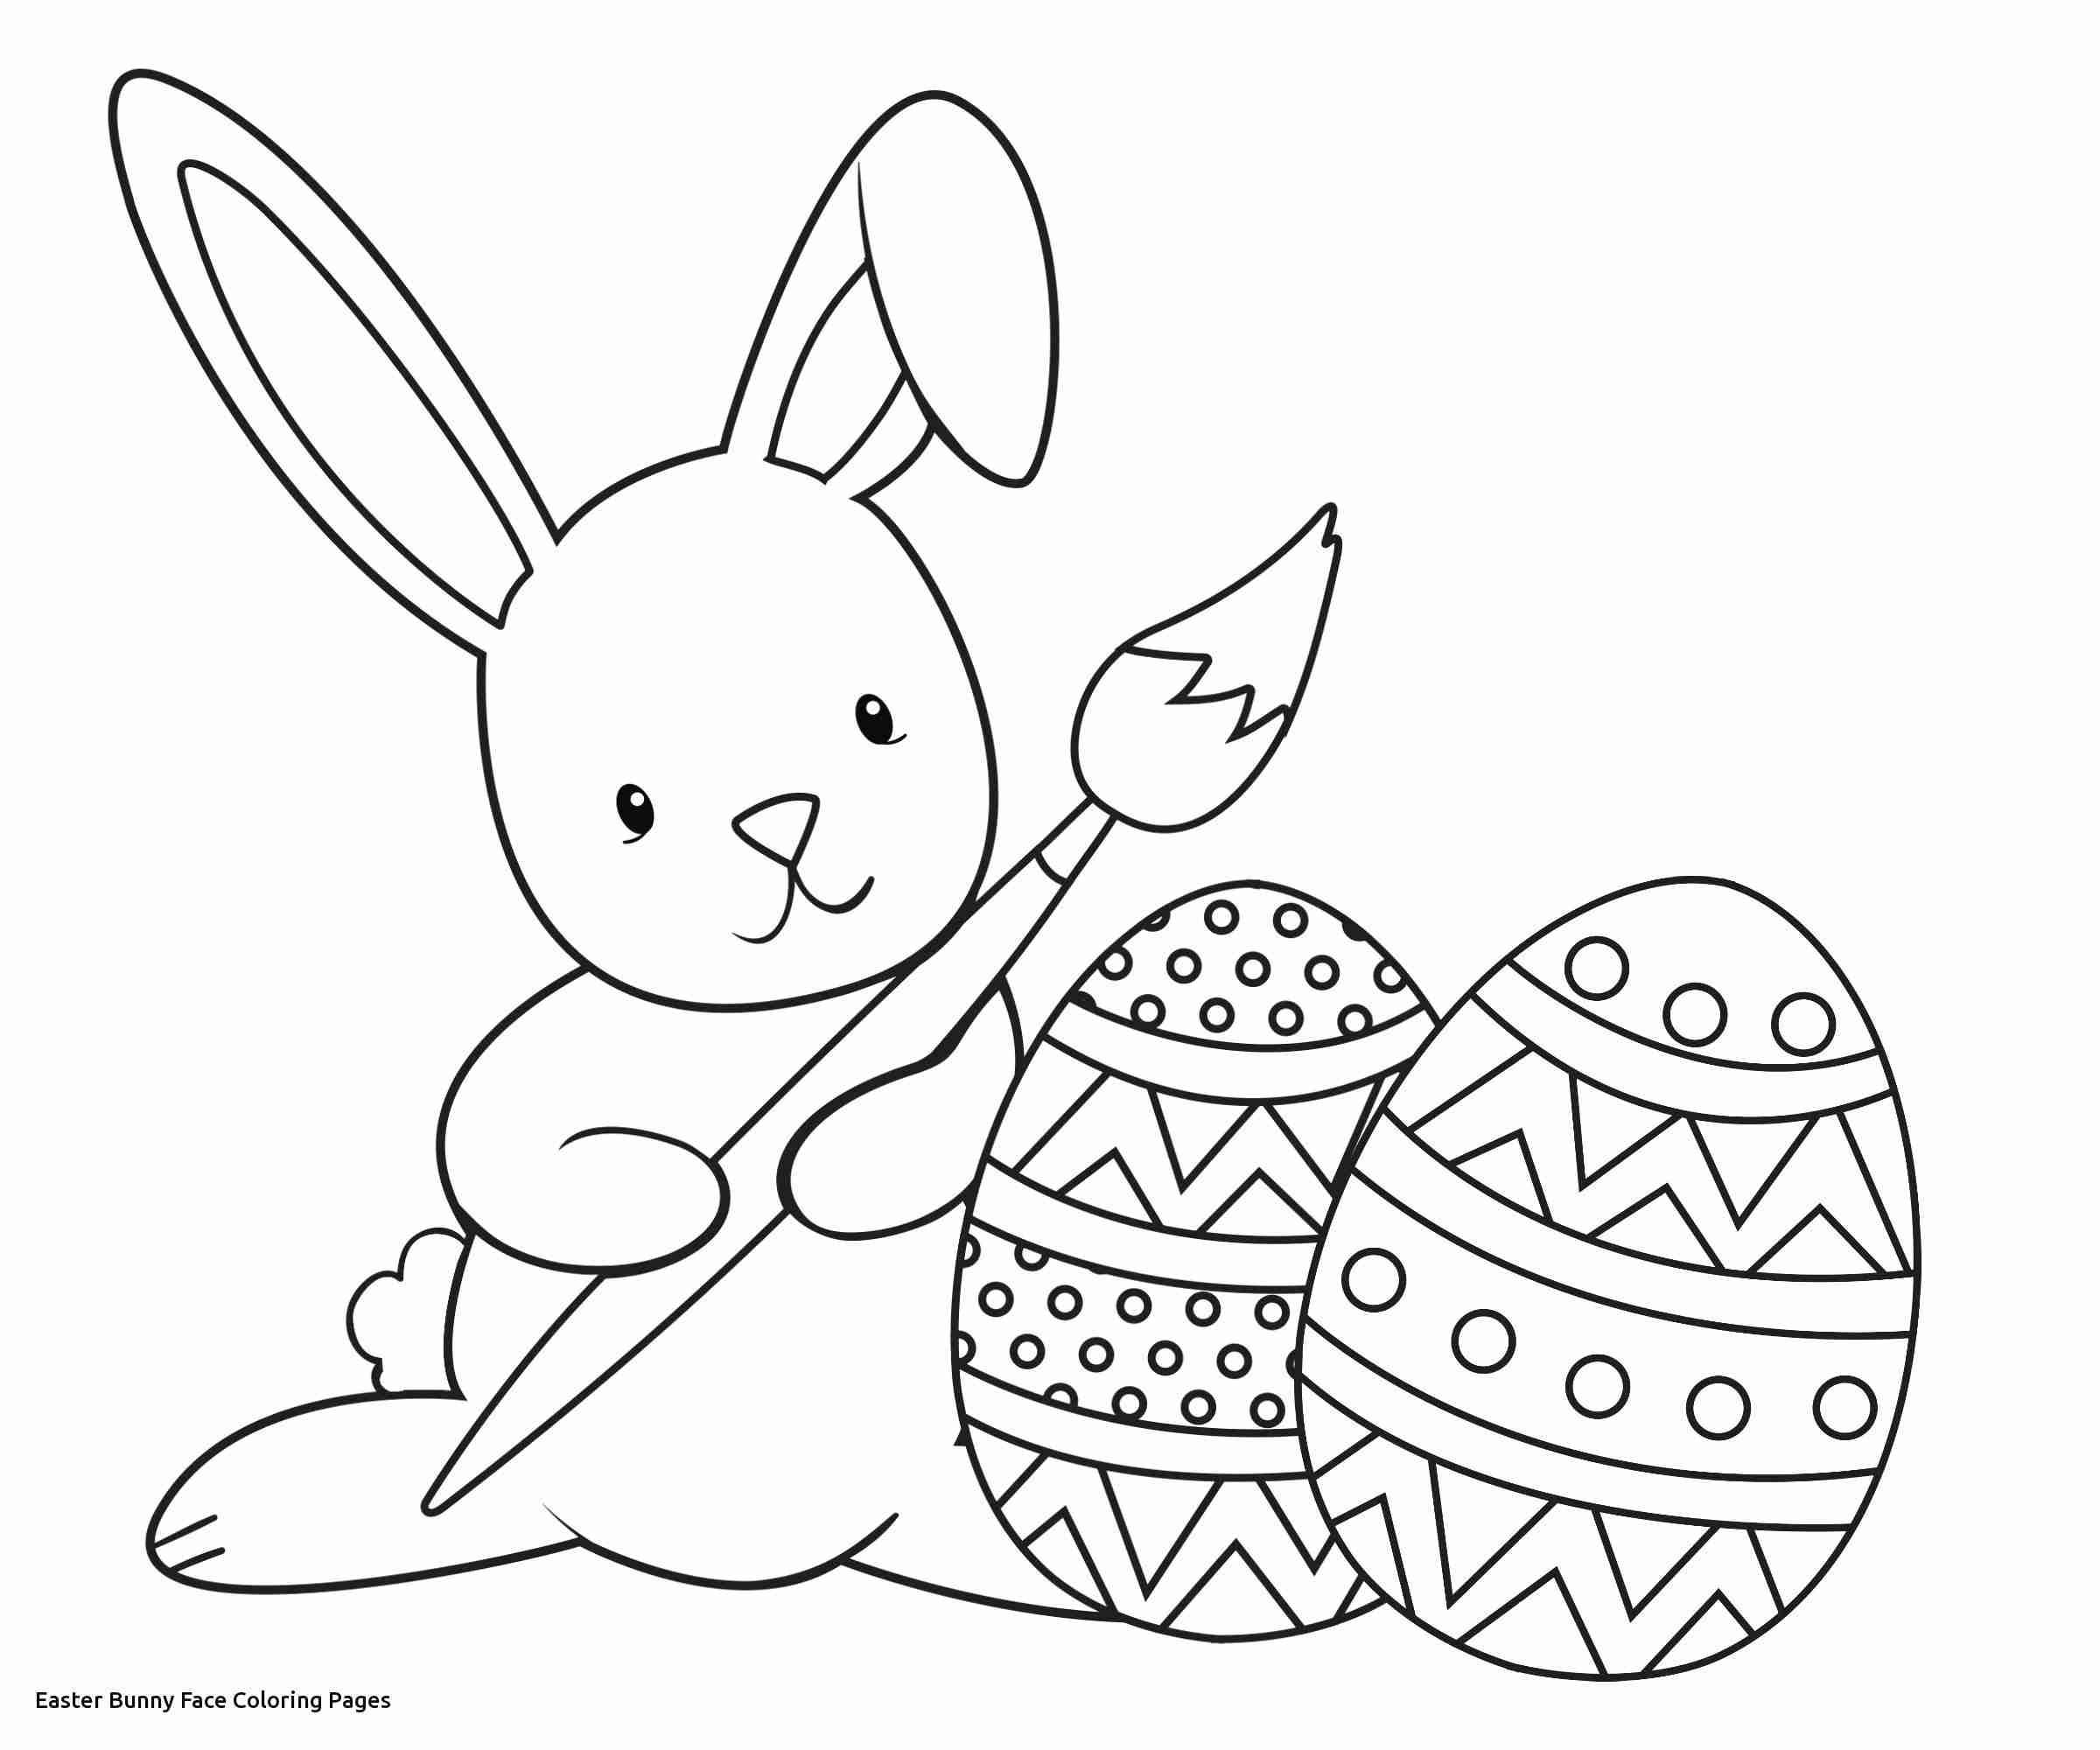 Easter Bunny Face Coloring Pages At Getcolorings